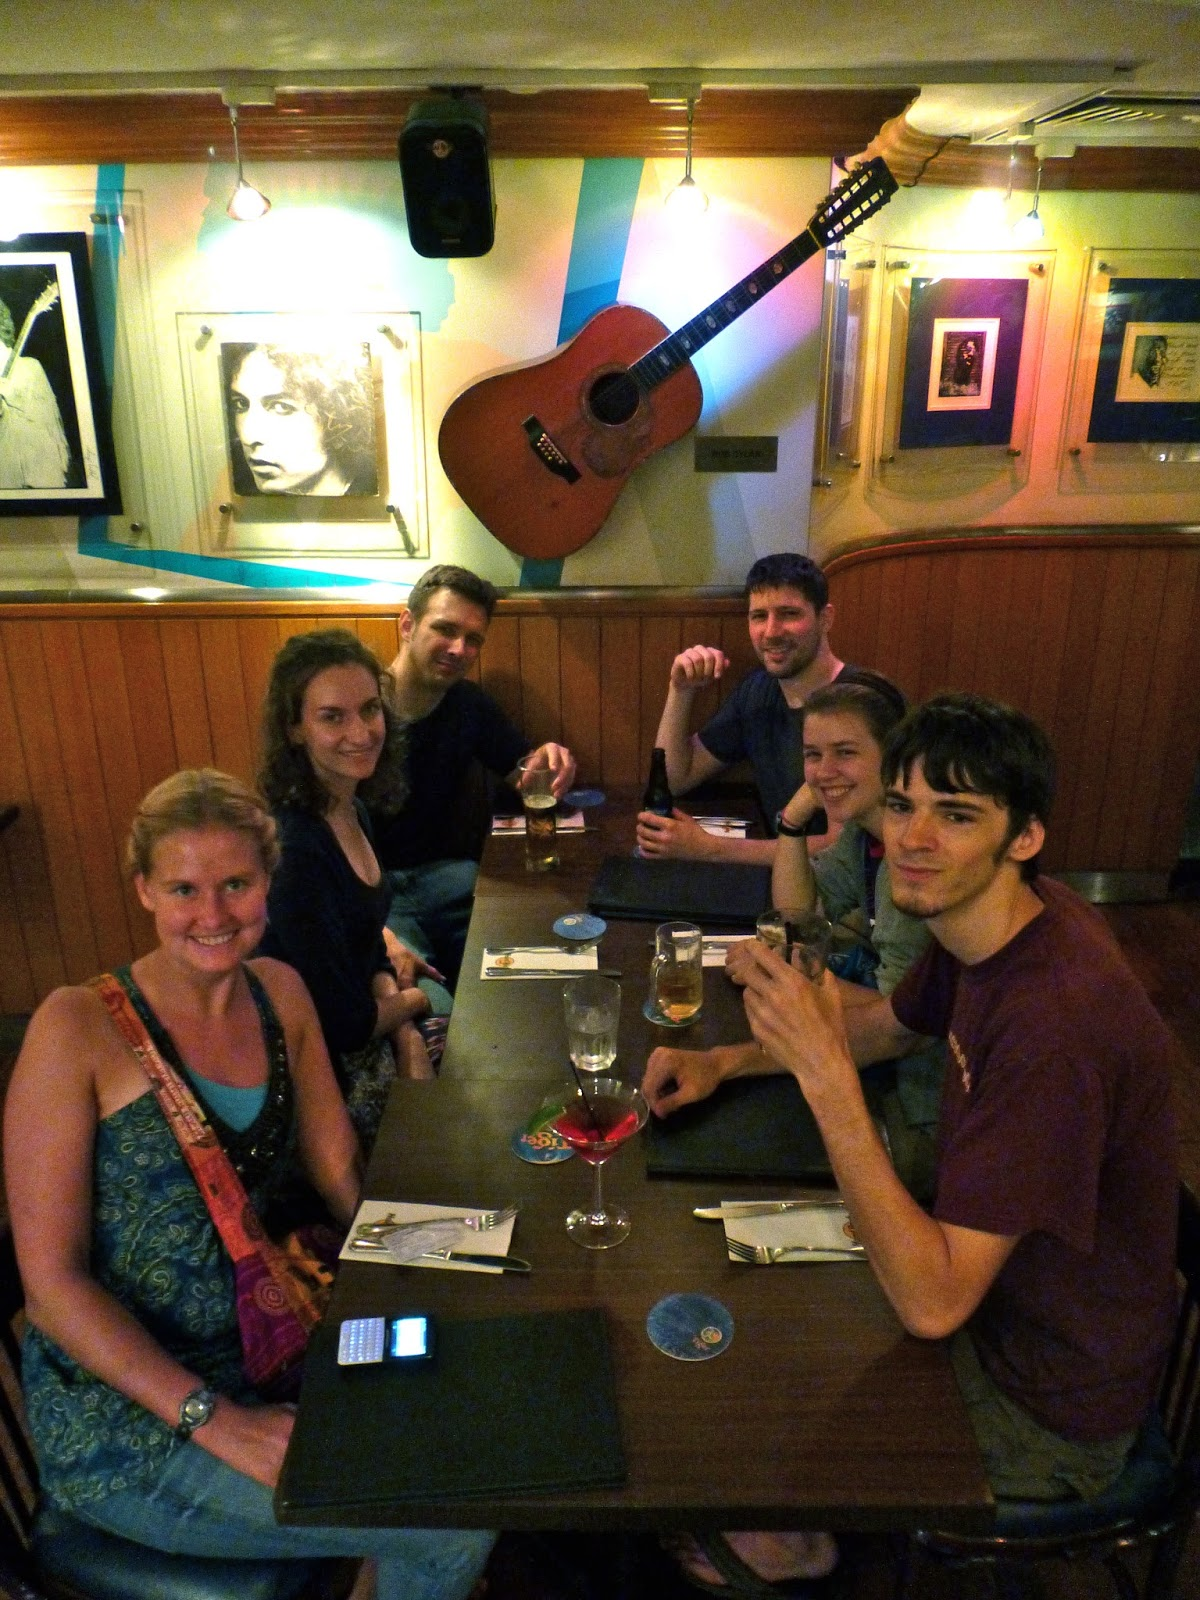 Out on the town: Singapore parks and bars